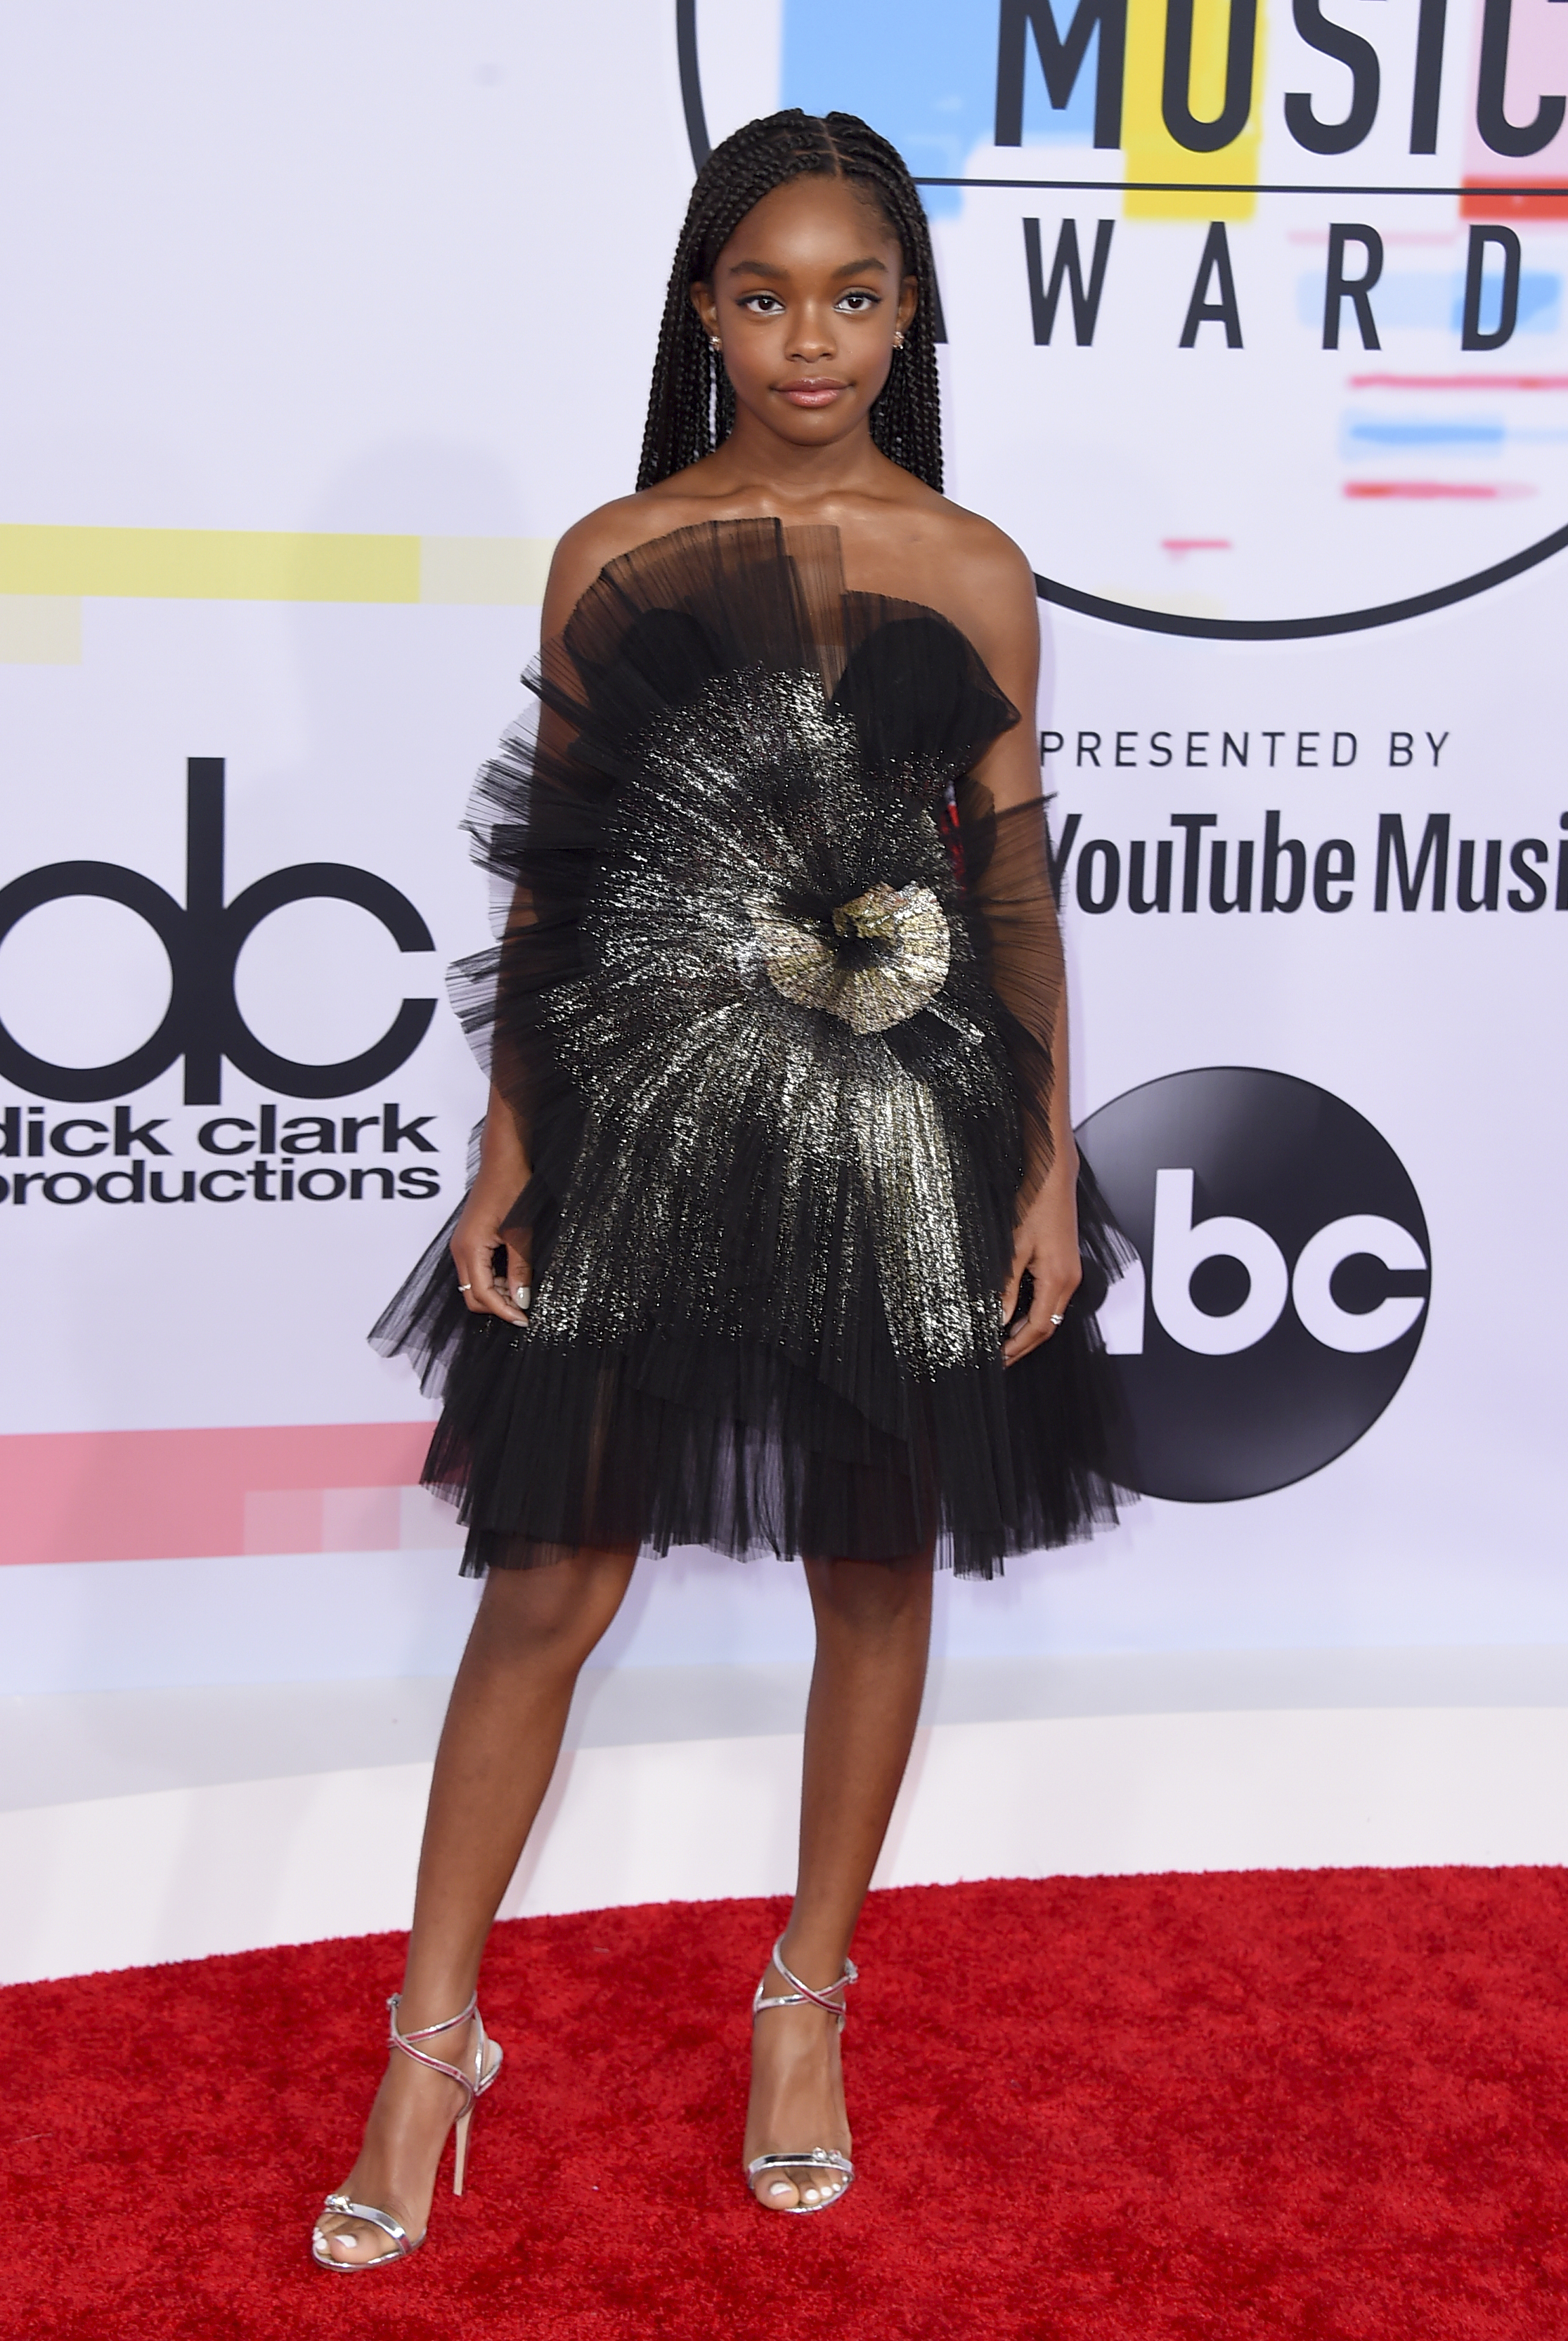 "<div class=""meta image-caption""><div class=""origin-logo origin-image none""><span>none</span></div><span class=""caption-text"">Marsai Martin arrives at the American Music Awards on Tuesday, Oct. 9, 2018, at the Microsoft Theater in Los Angeles. (Jordan Strauss/Invision/AP)</span></div>"